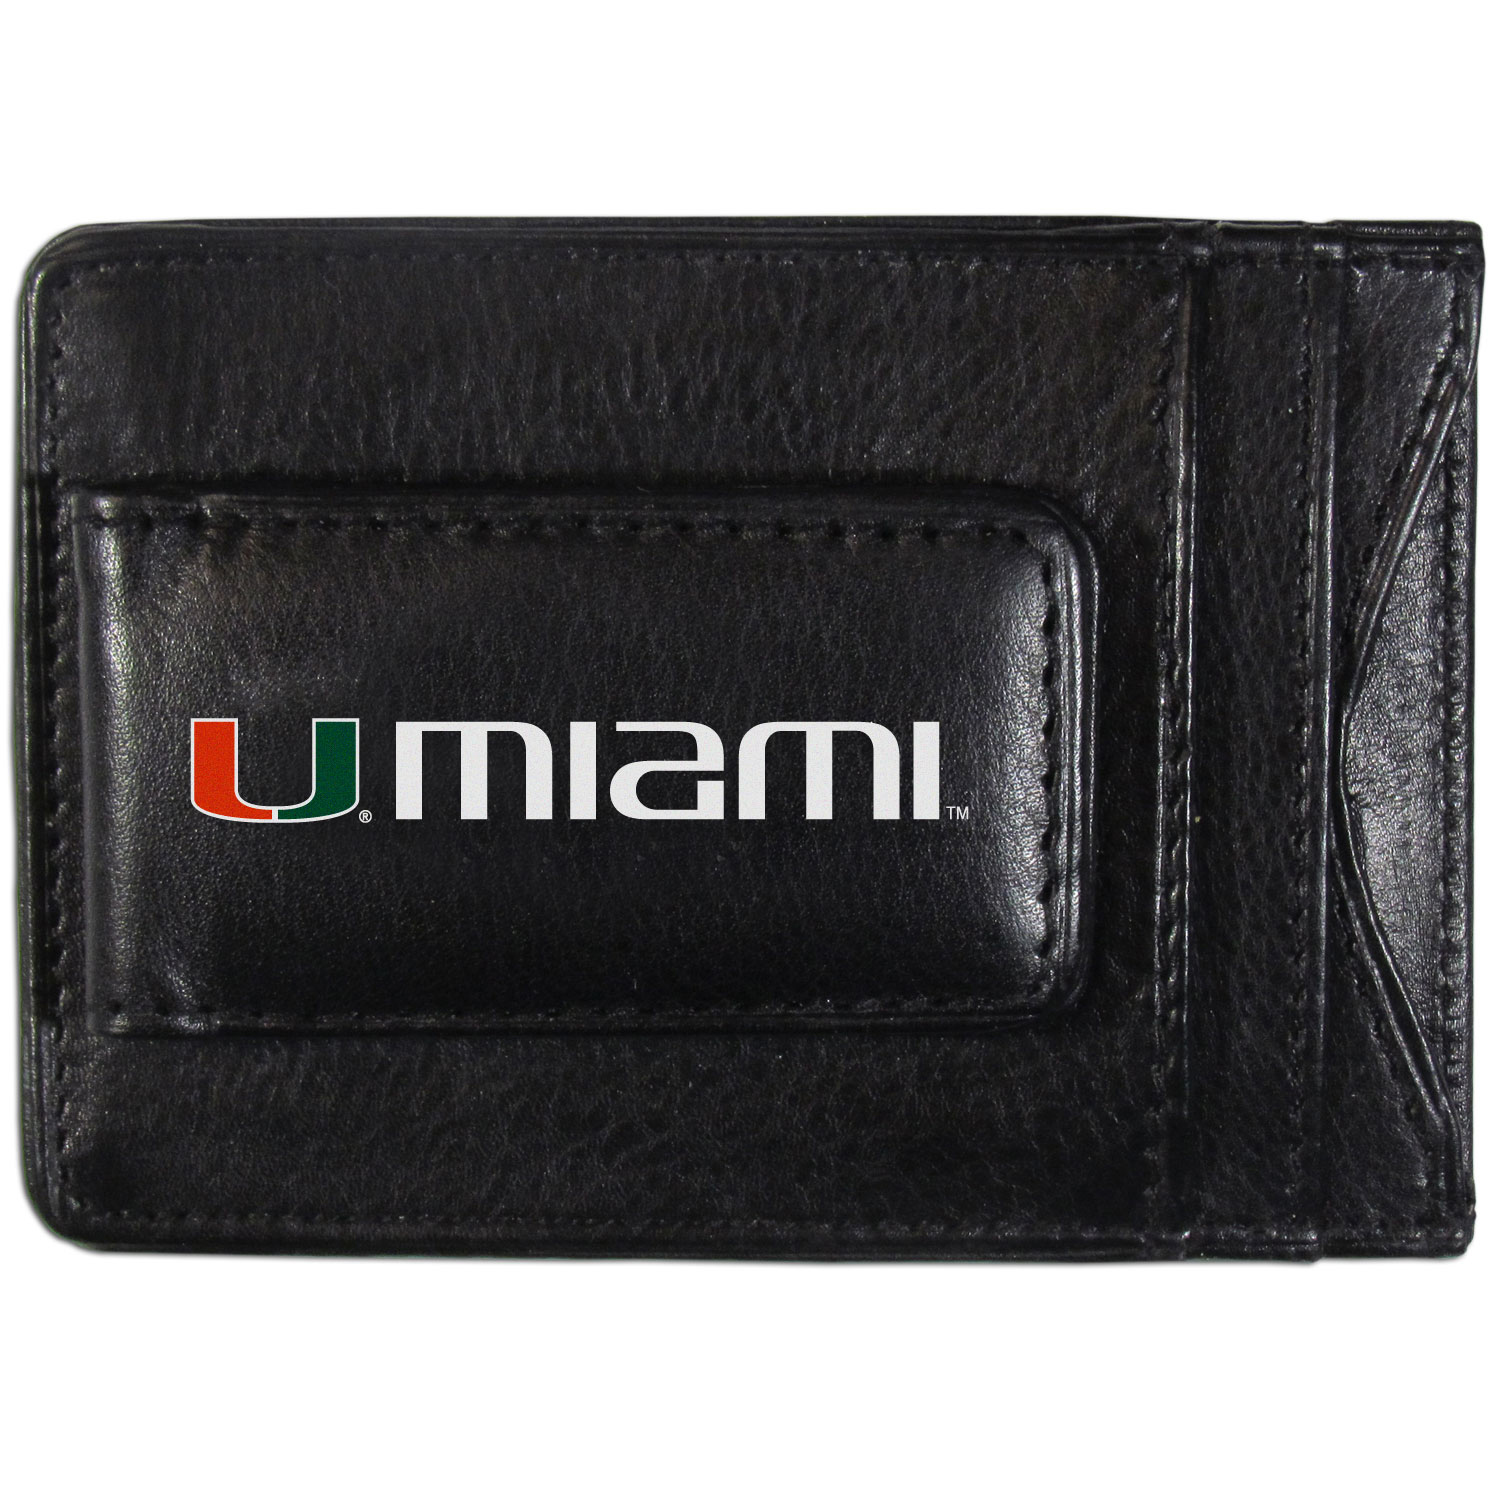 Miami Hurricanes Logo Leather Cash and Cardholder - This super slim leather wallet lets you have all the benefits of a money clip while keeping the organization of a wallet. On one side of this front pocket wallet there is a strong, magnetic money clip to keep your cash easily accessible and the?Miami Hurricanes team logo on the front. The versatile men's accessory is a perfect addition to your fan apparel.